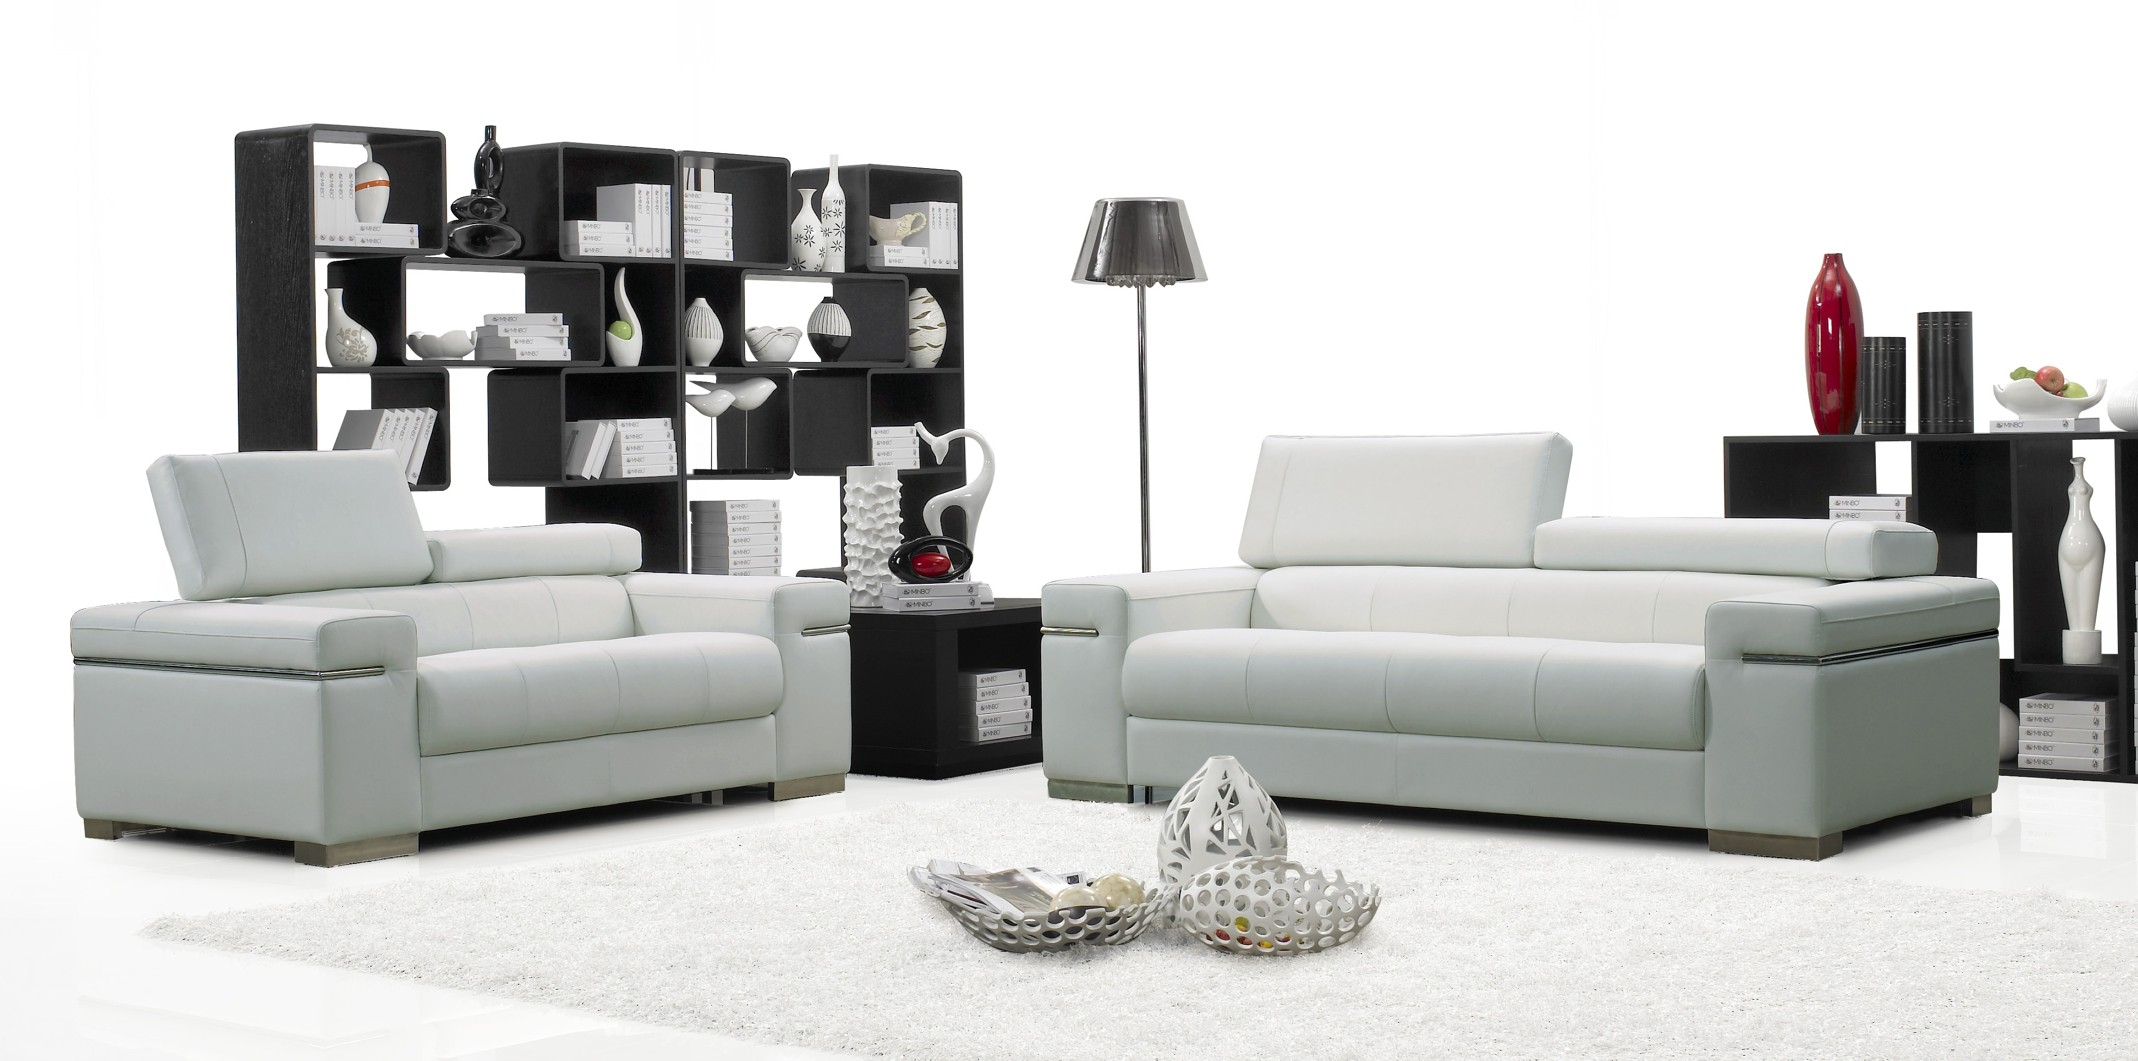 Superb Design Of The White Rugs And White Wall Added With Grey Modern Sofa Sets Ideas